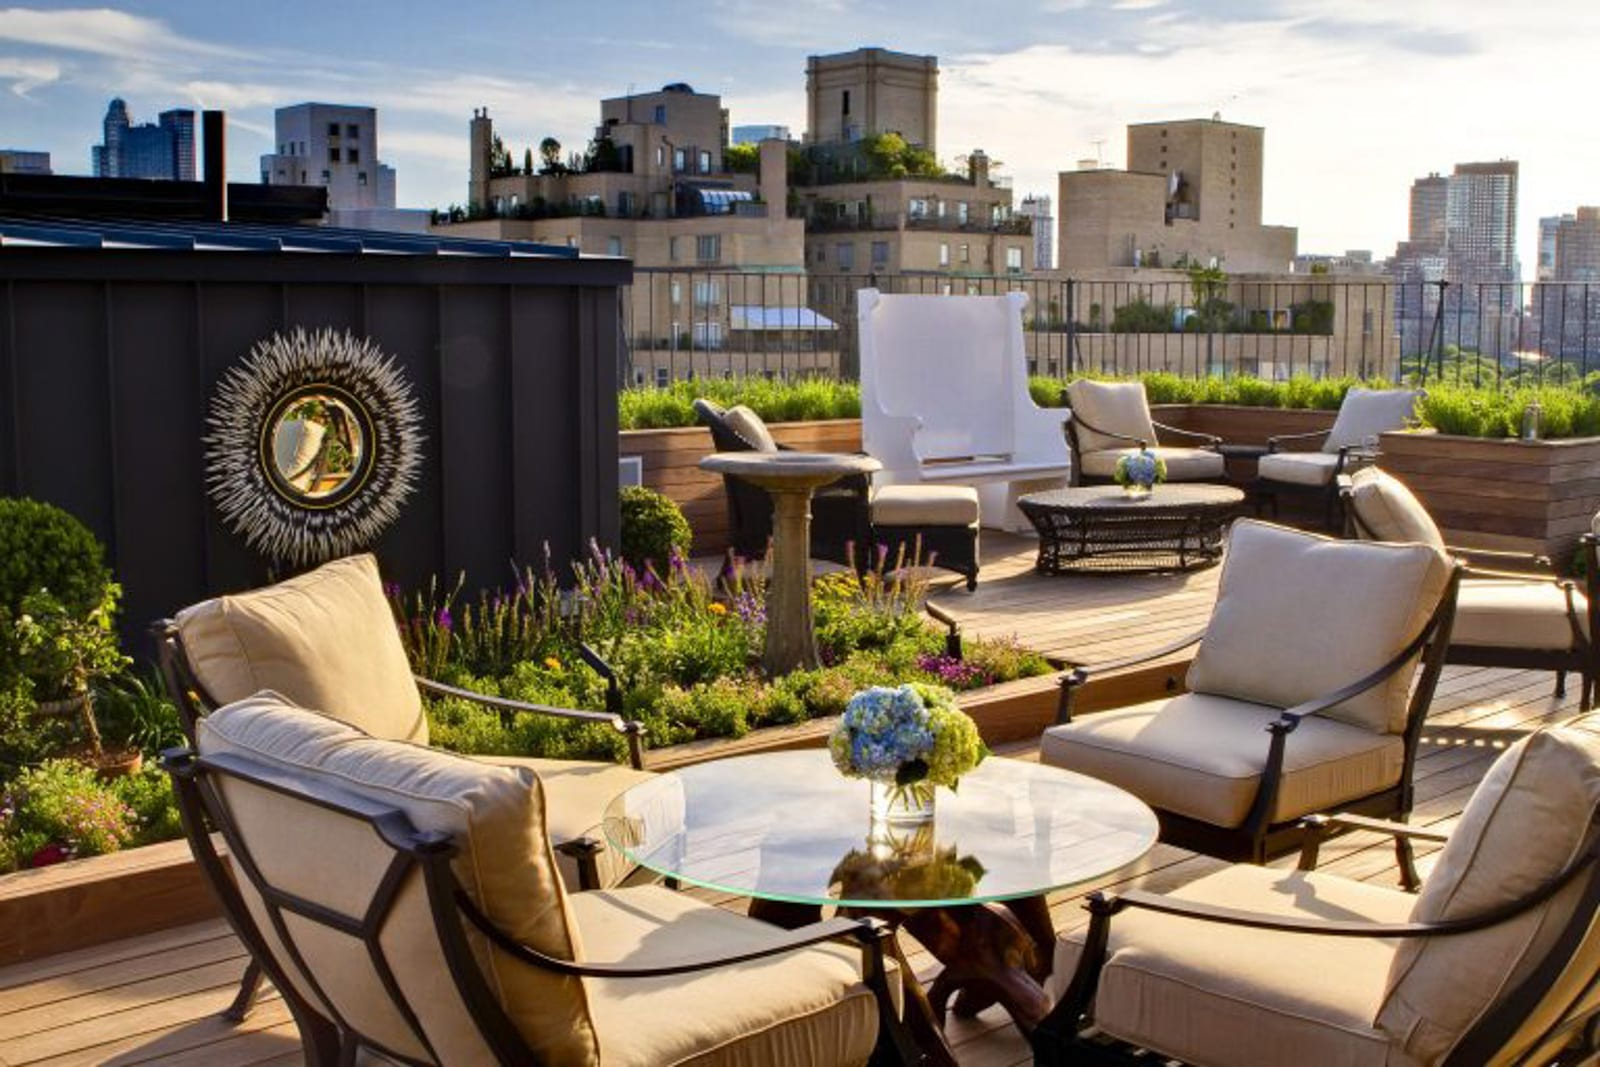 3b_Private-Roof-Garden_16574_high-768x512-2